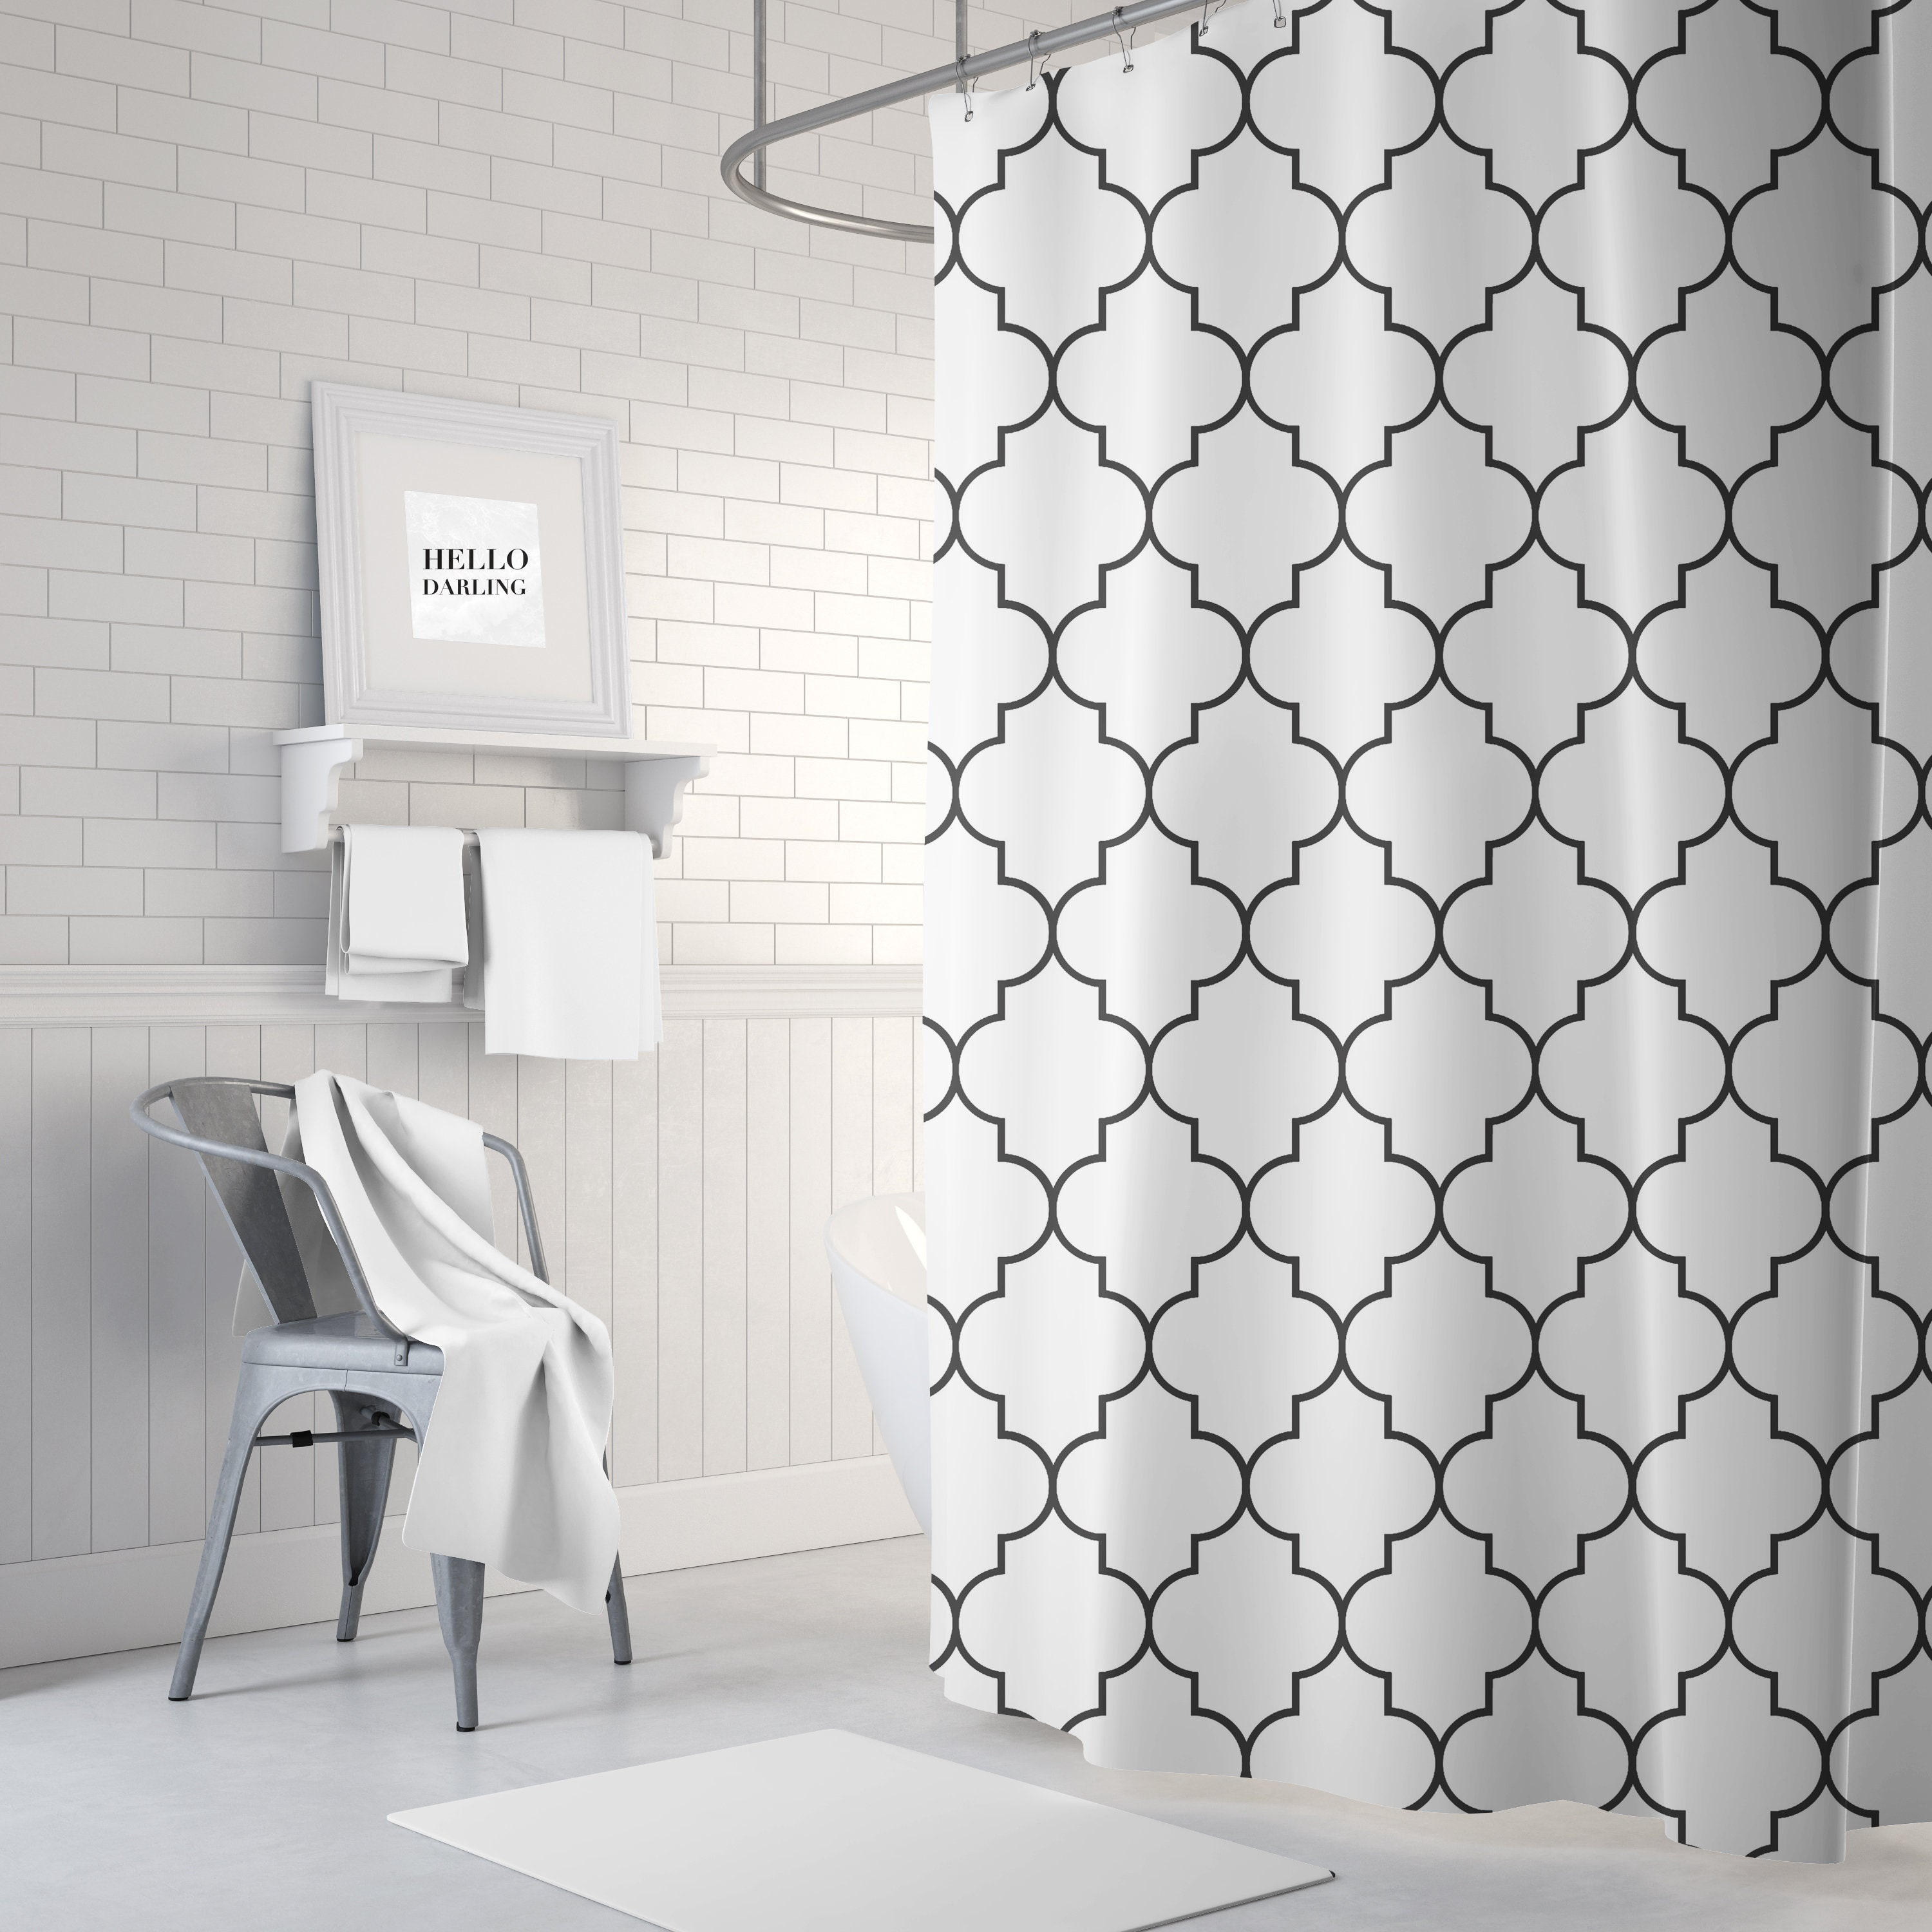 quatrefoil shower curtain black and white fabric shower etsy. Black Bedroom Furniture Sets. Home Design Ideas